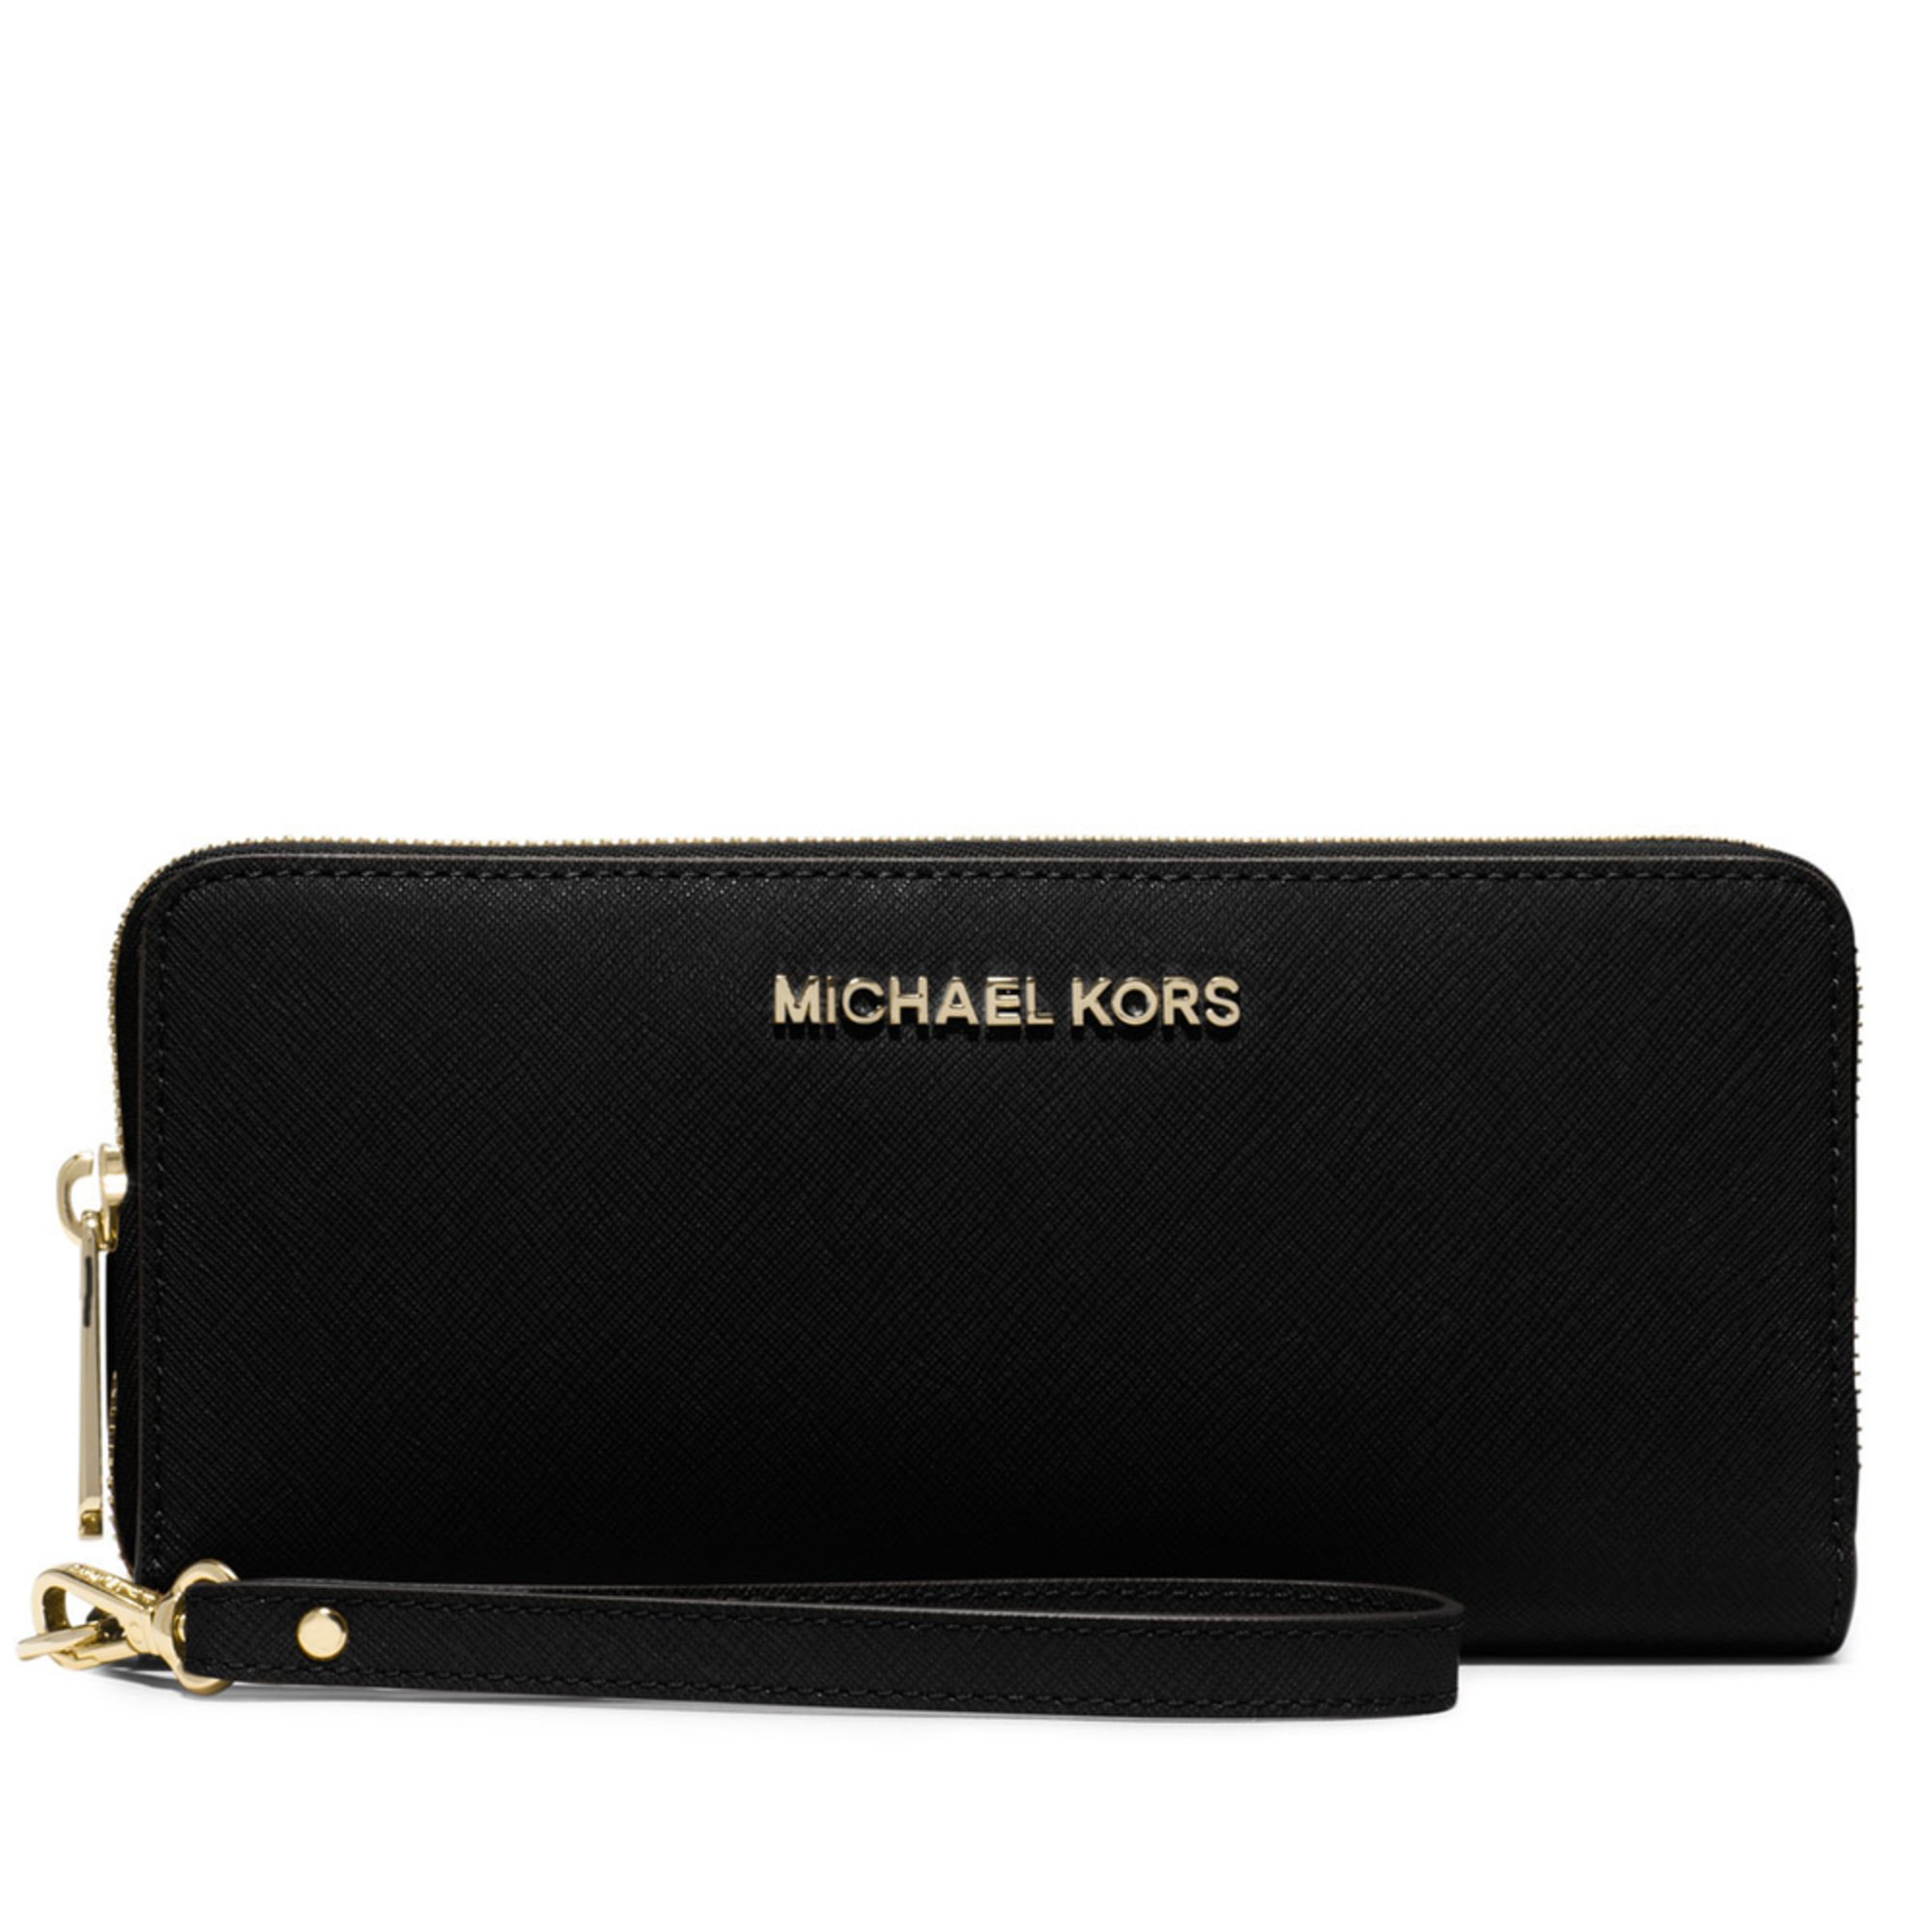 84941723cbe1 Michael Kors Jet Set Travel Continental Wristlet Black | Wristlets ...